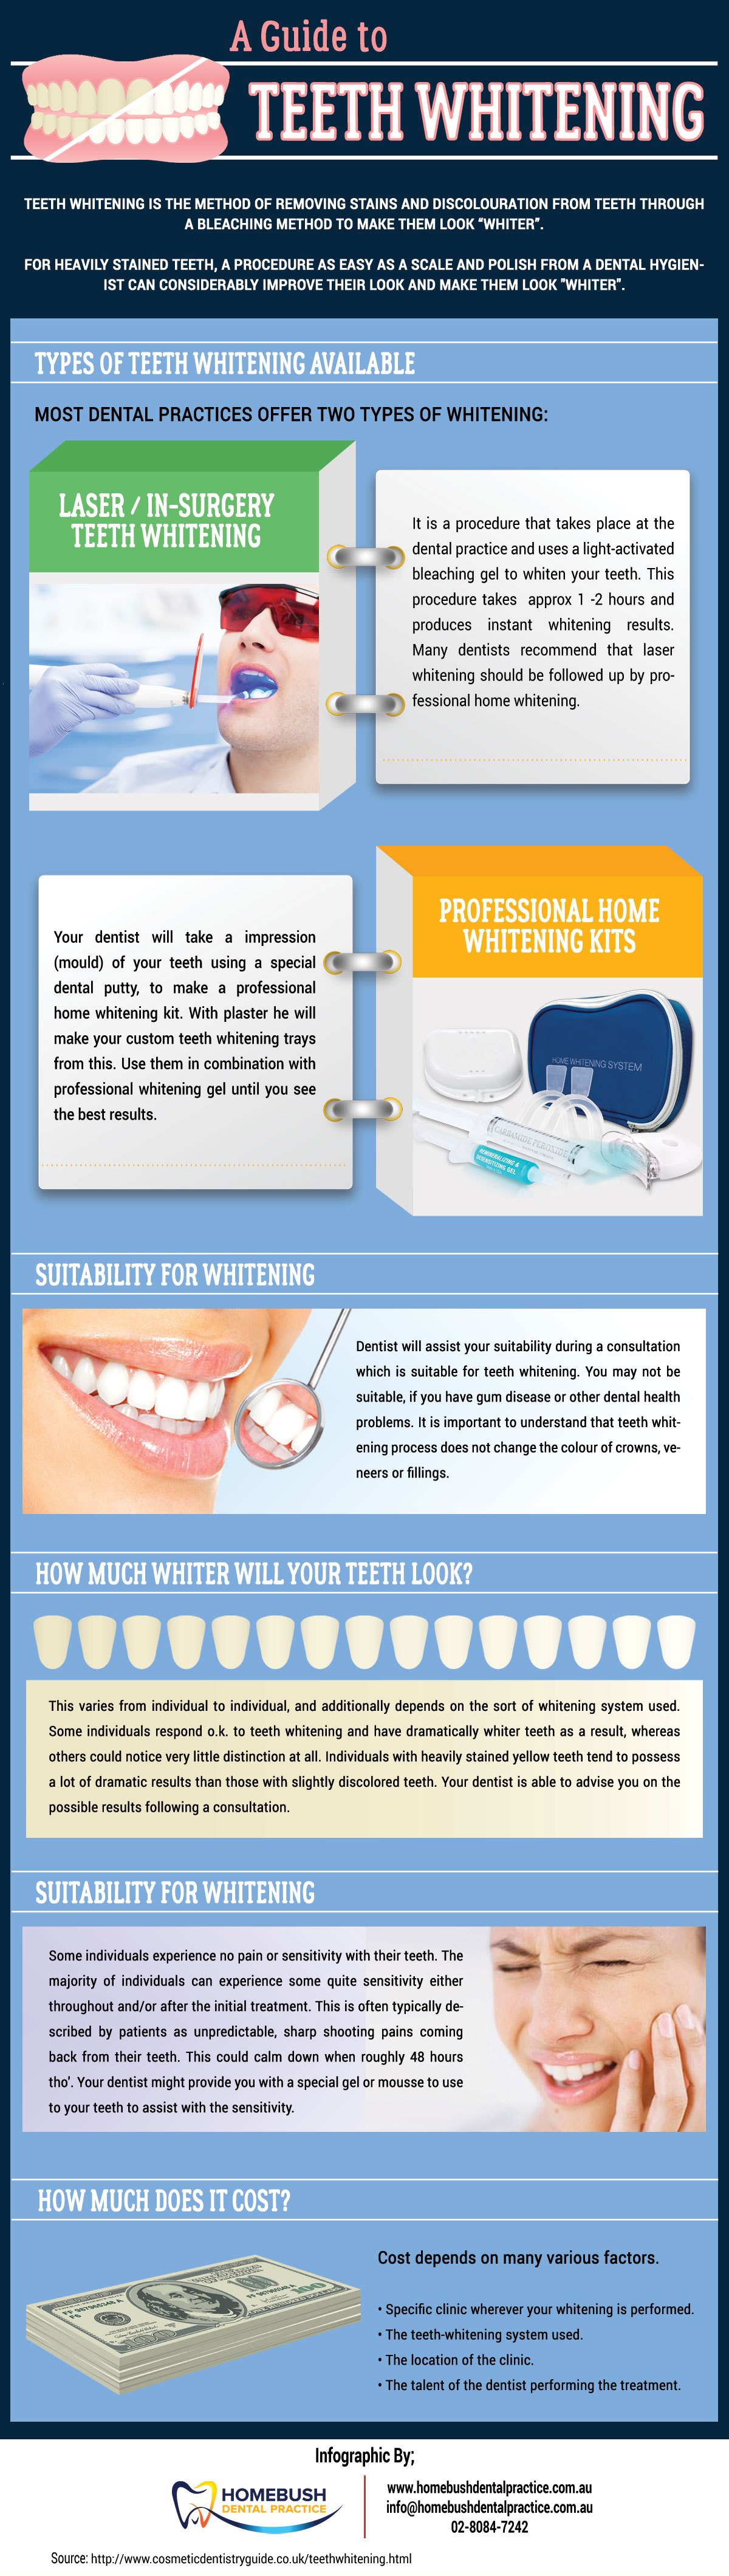 A-Guide-to-teeth-whitening